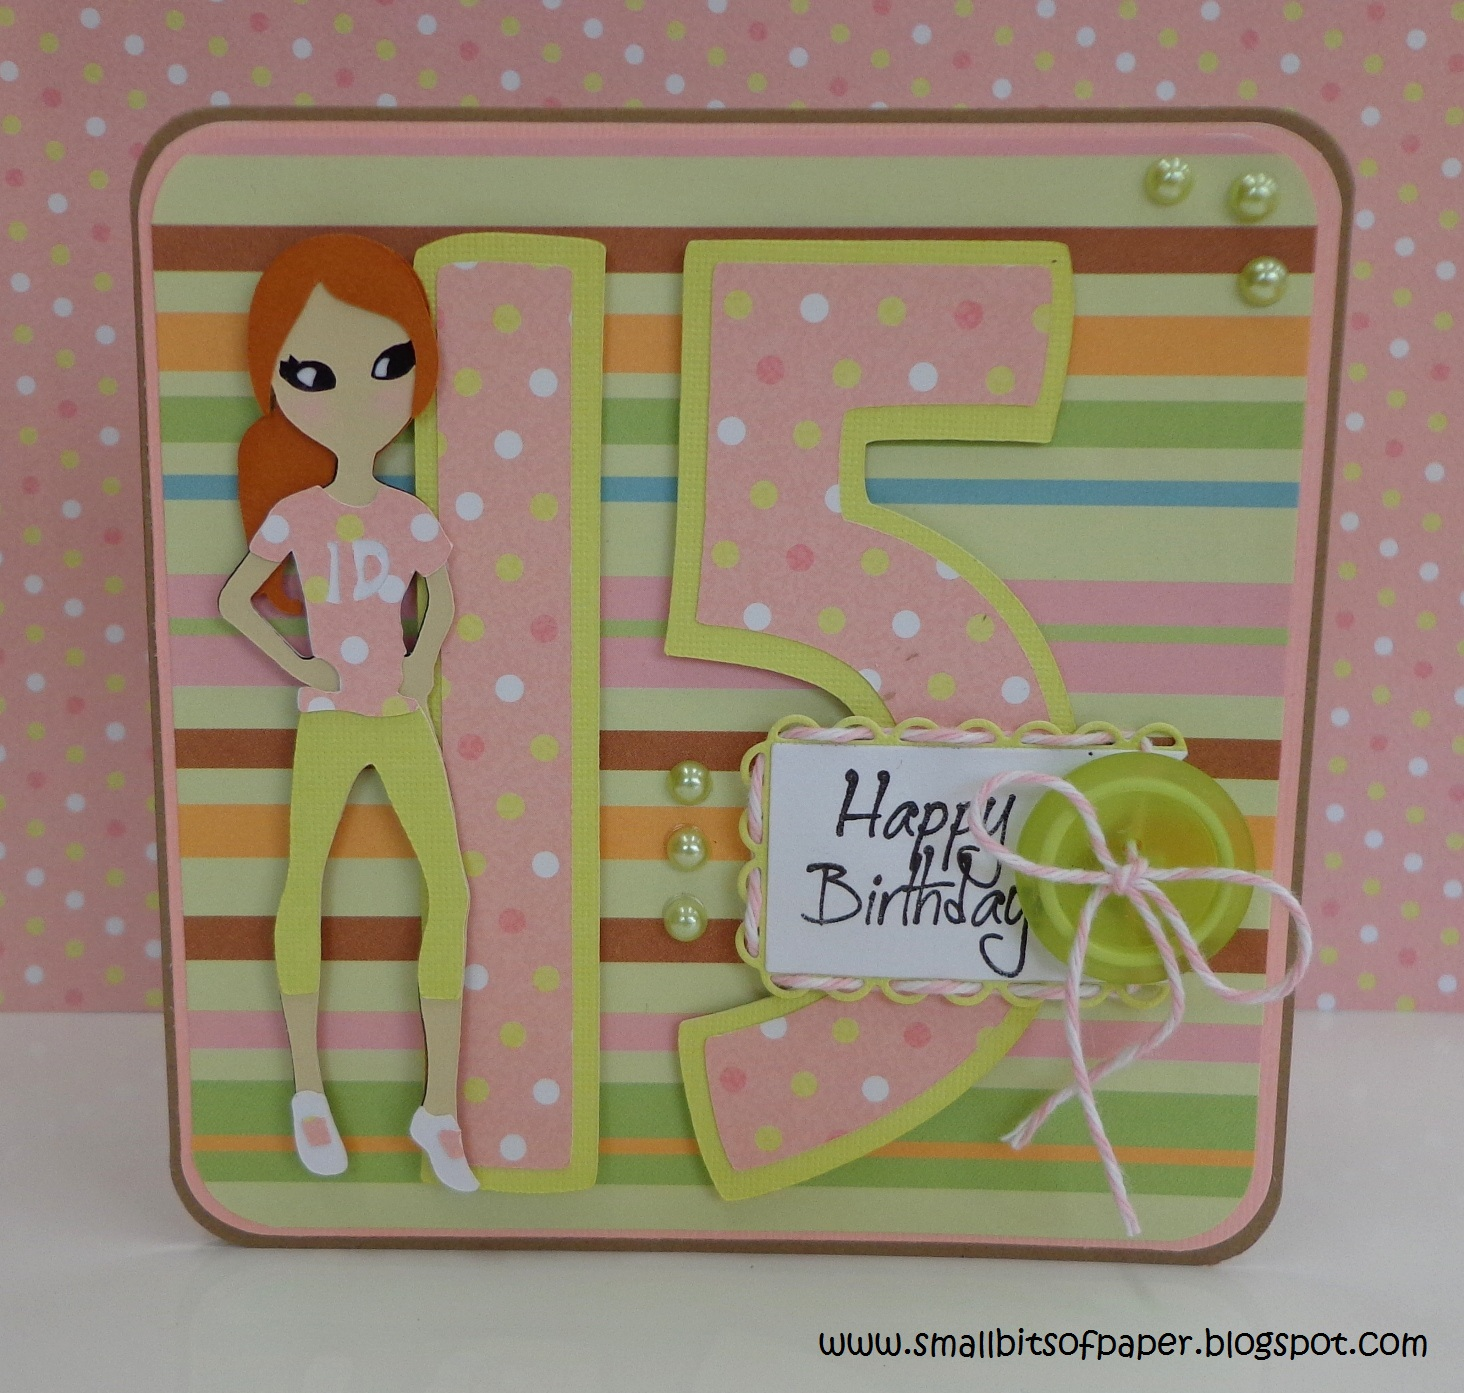 Small Bits of Paper Birthday Card for My Niece – Teen Birthday Cards